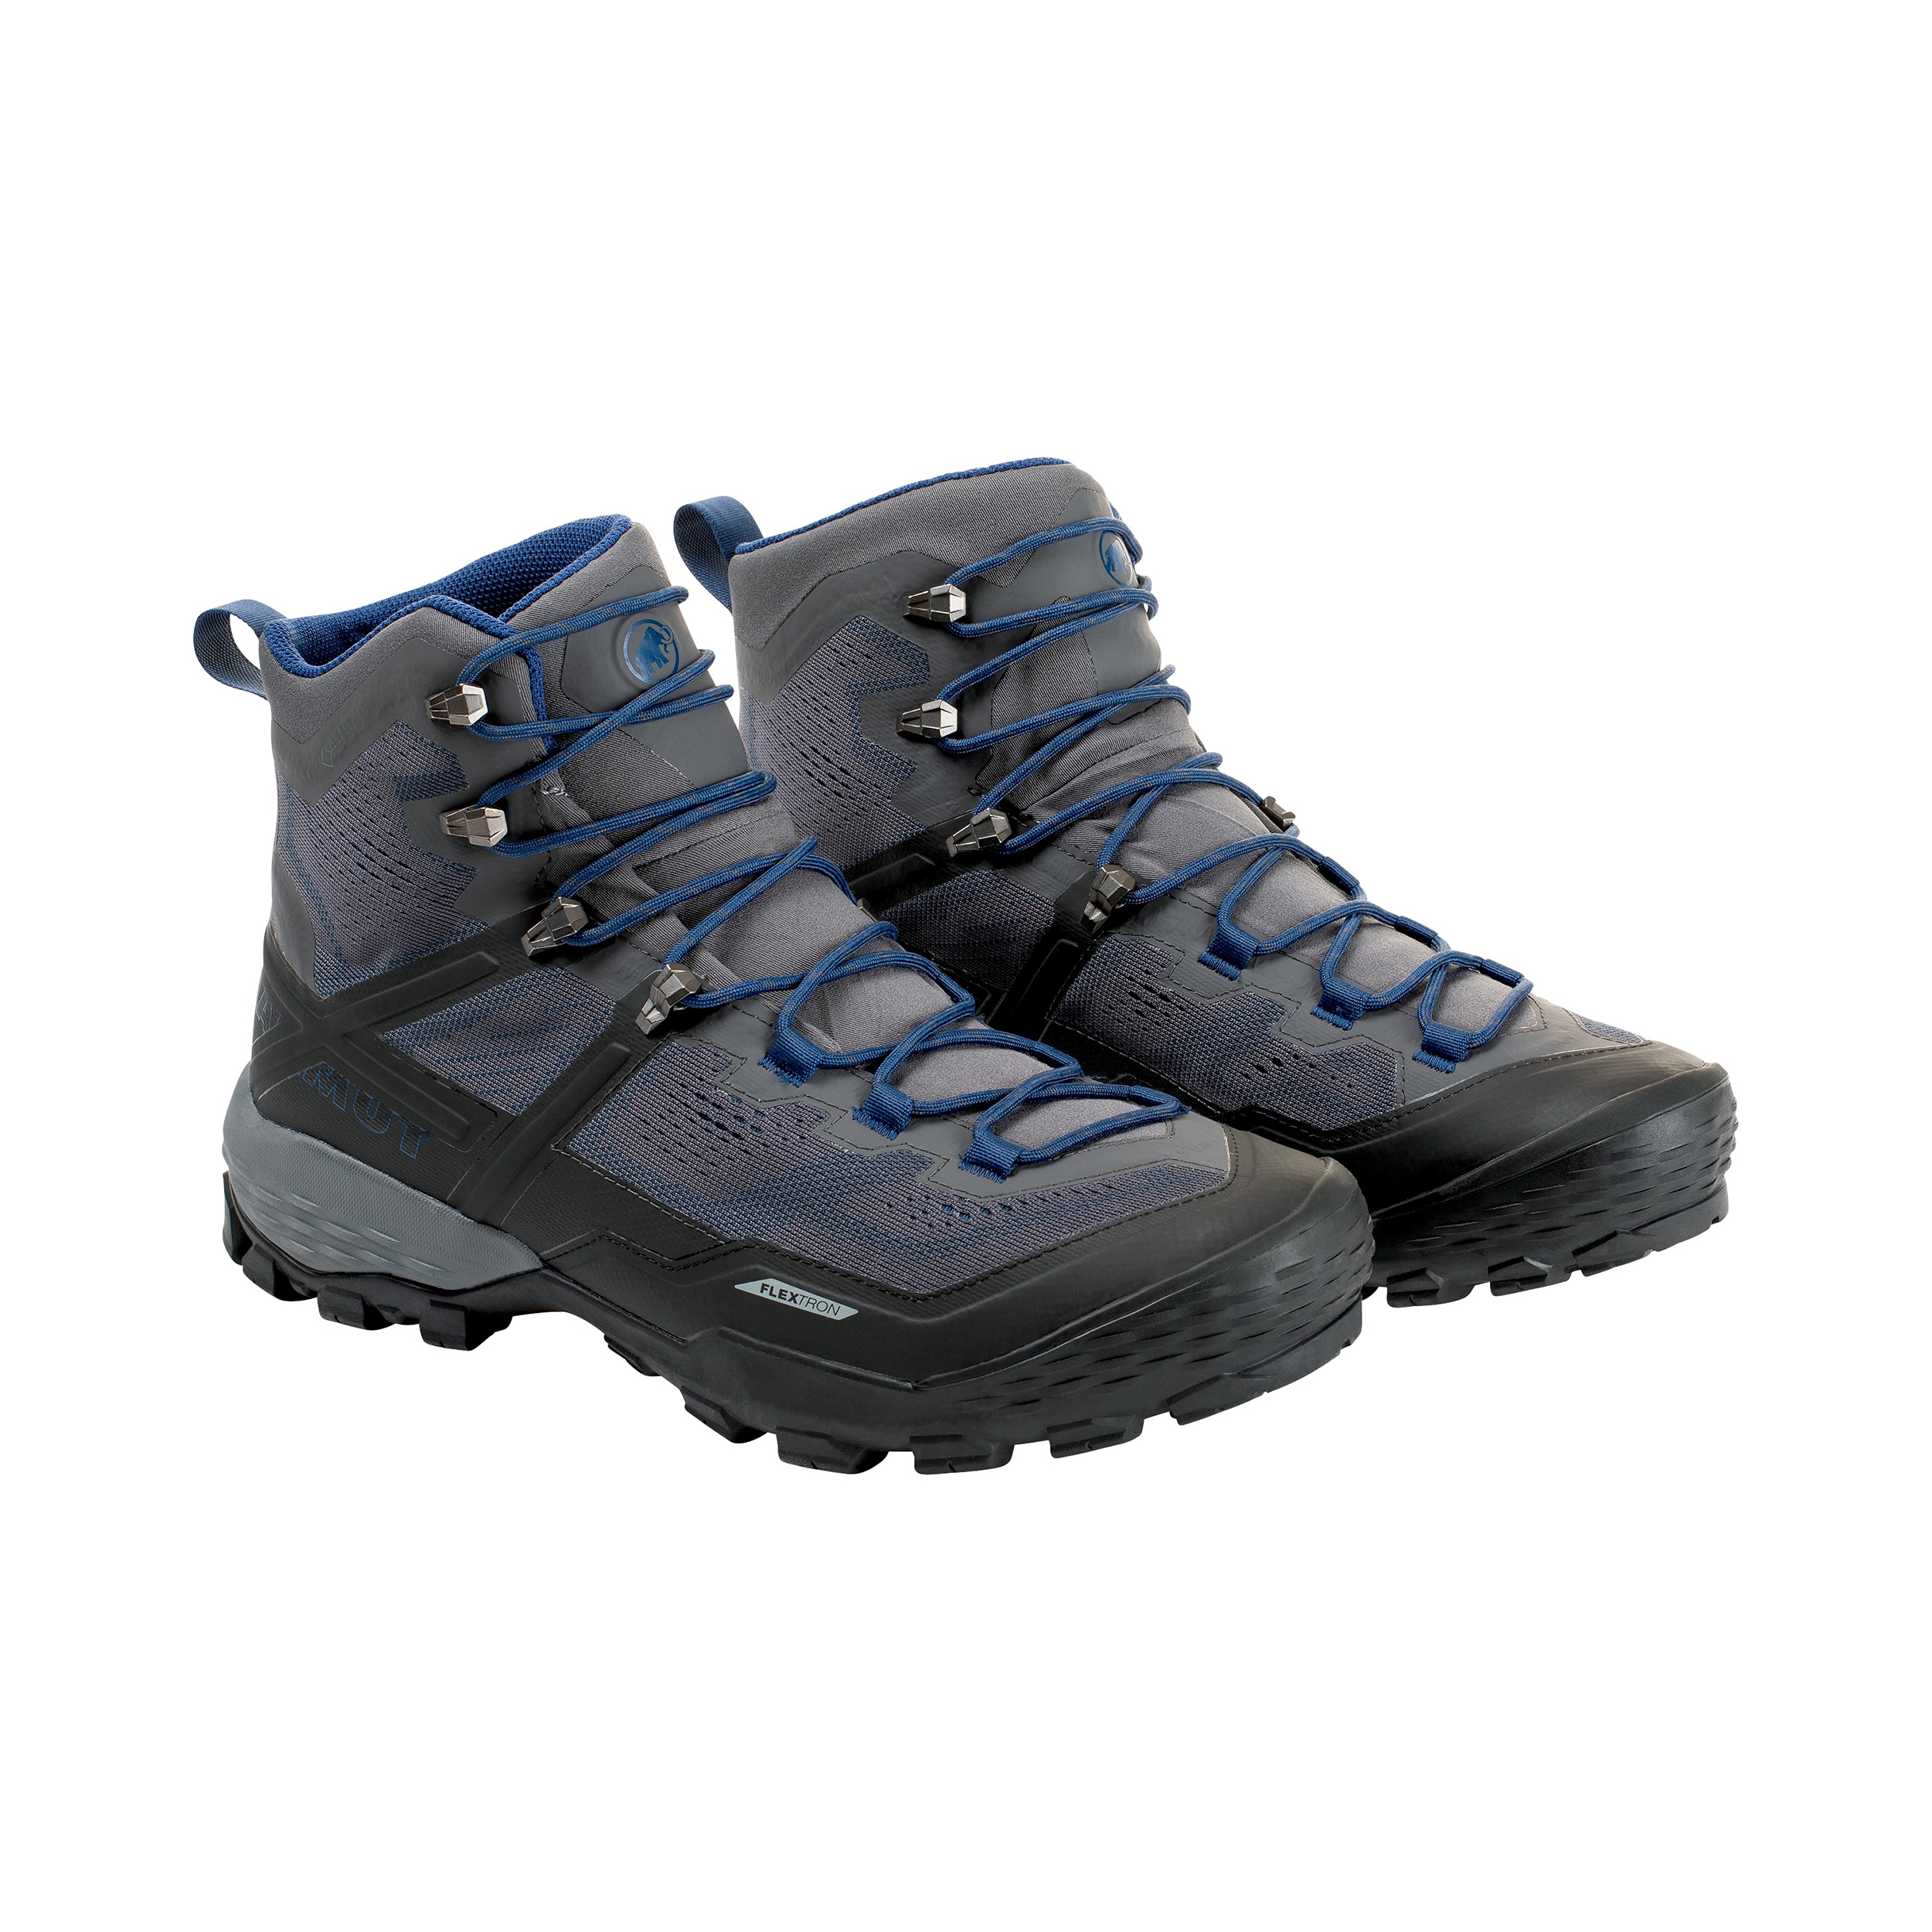 32e2c4fa79a Mammut Ducan High Gore-Tex Hiking Boots - Men's